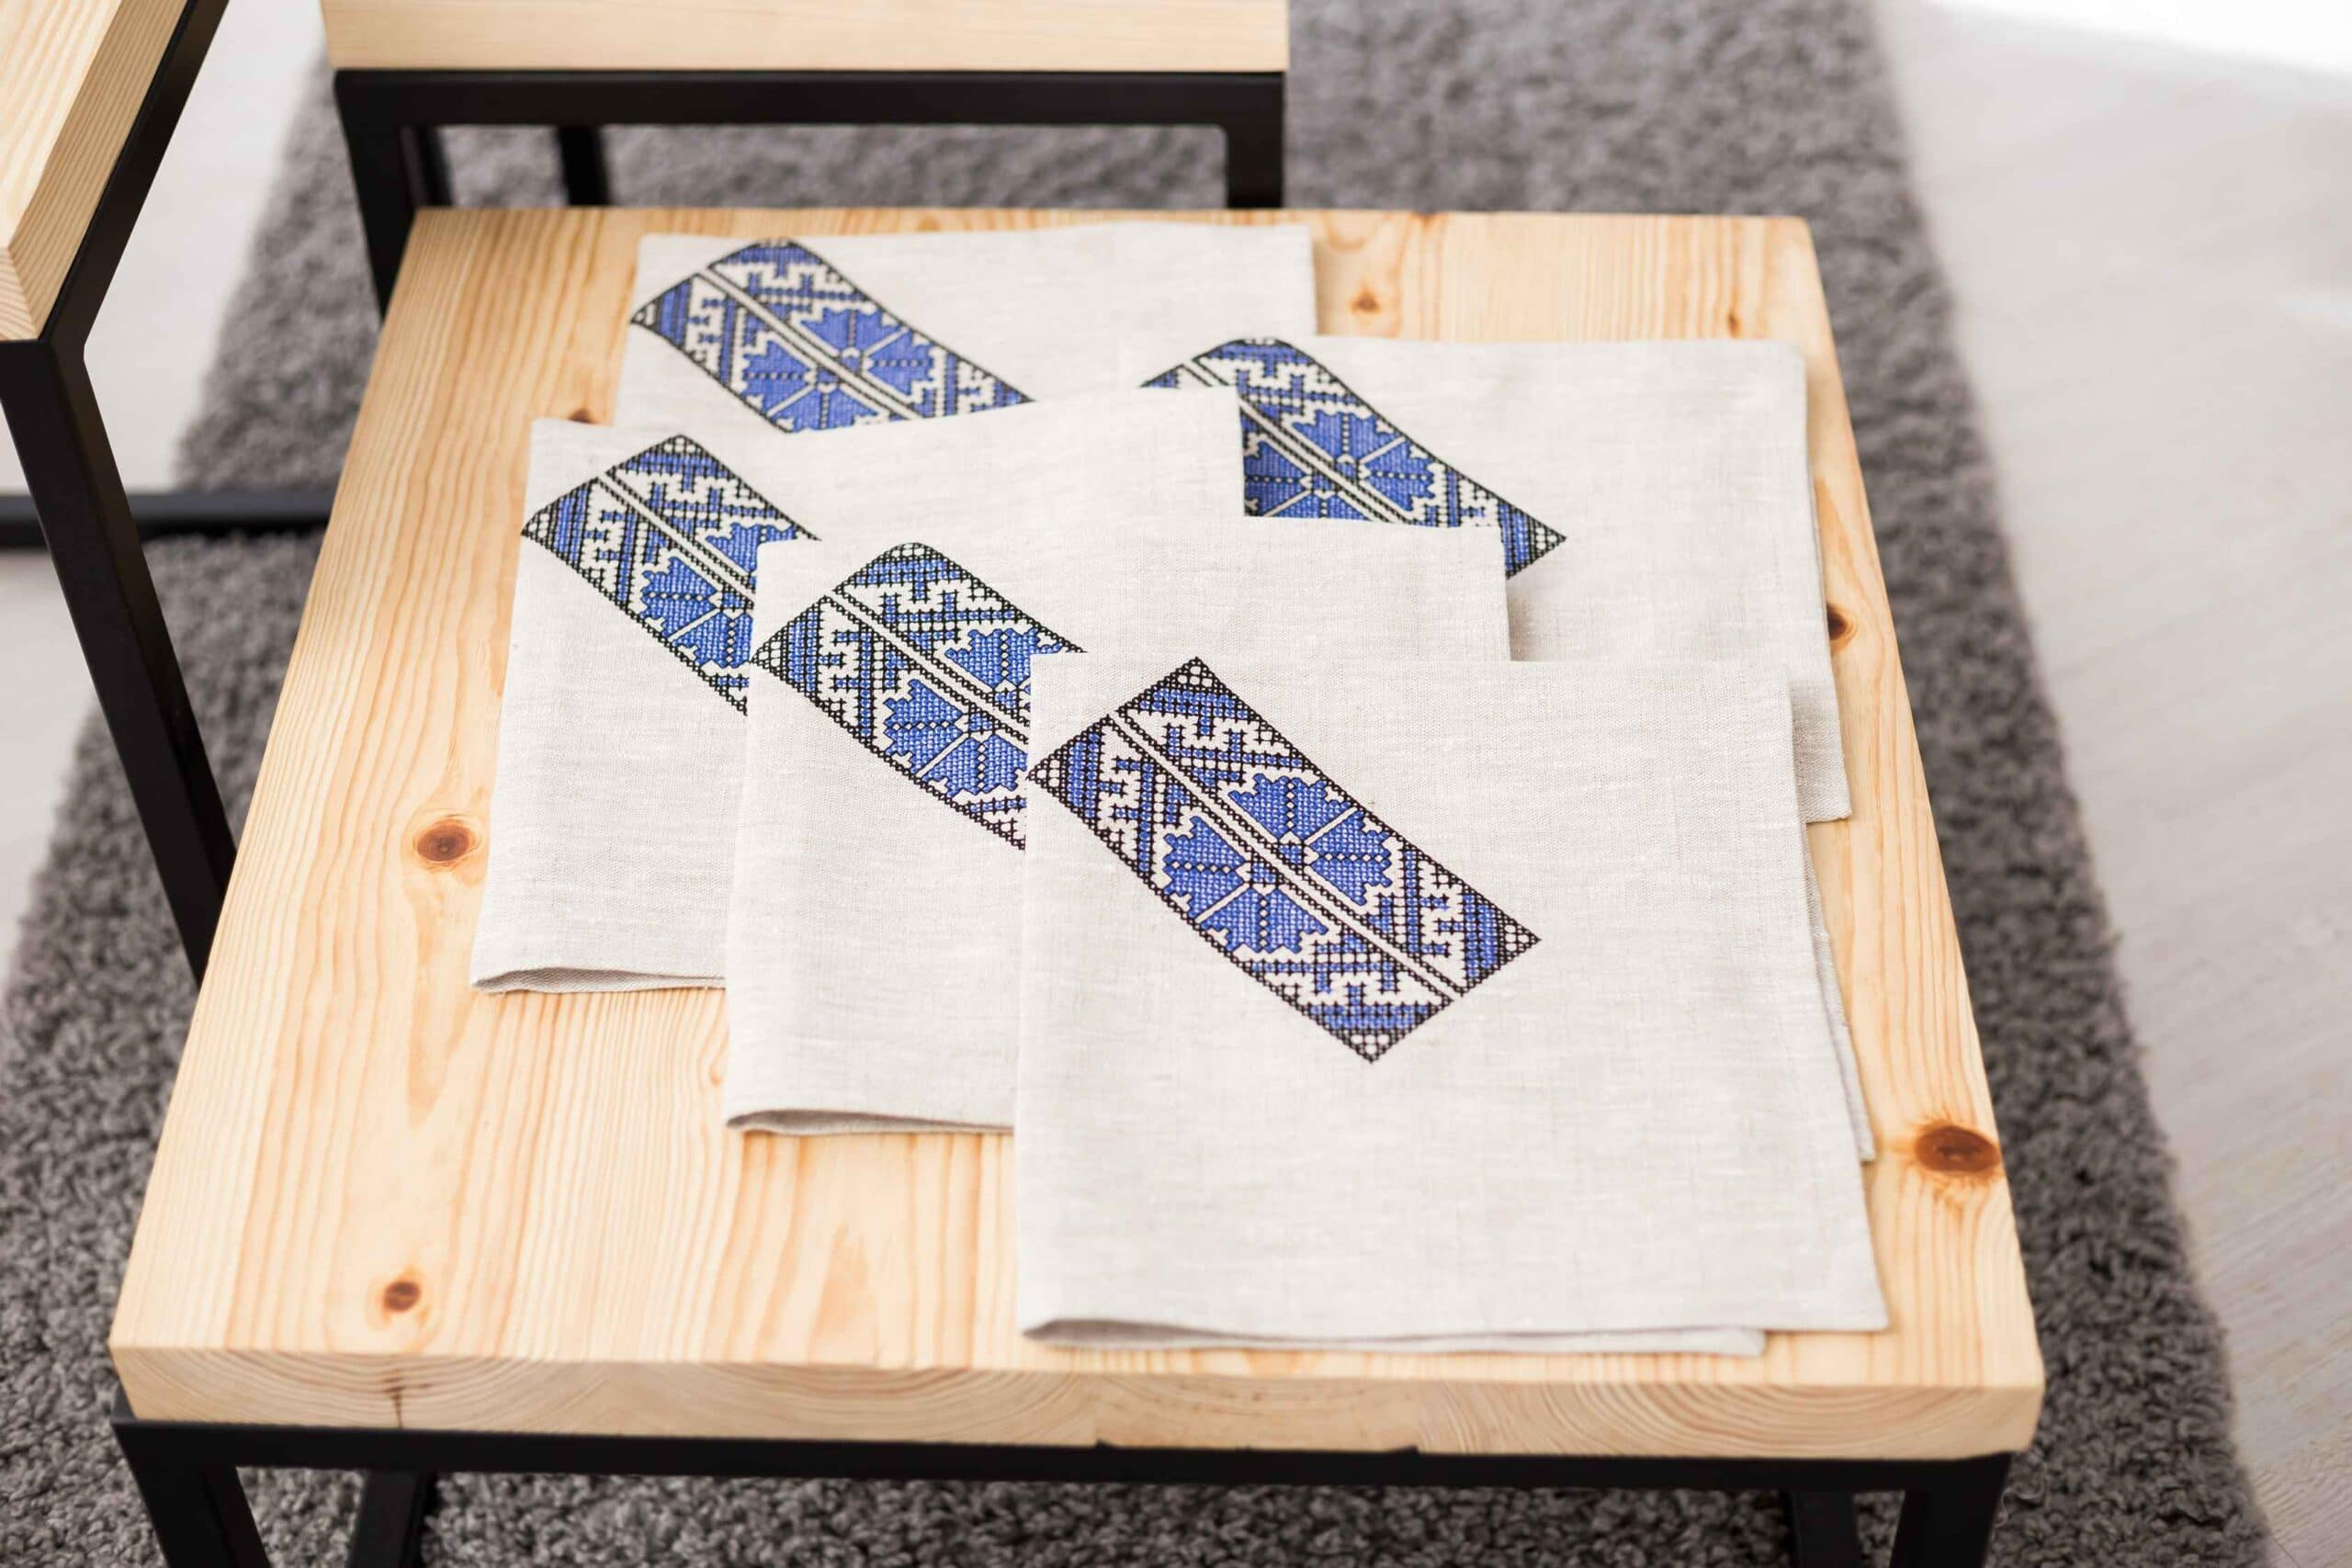 napkin on the table